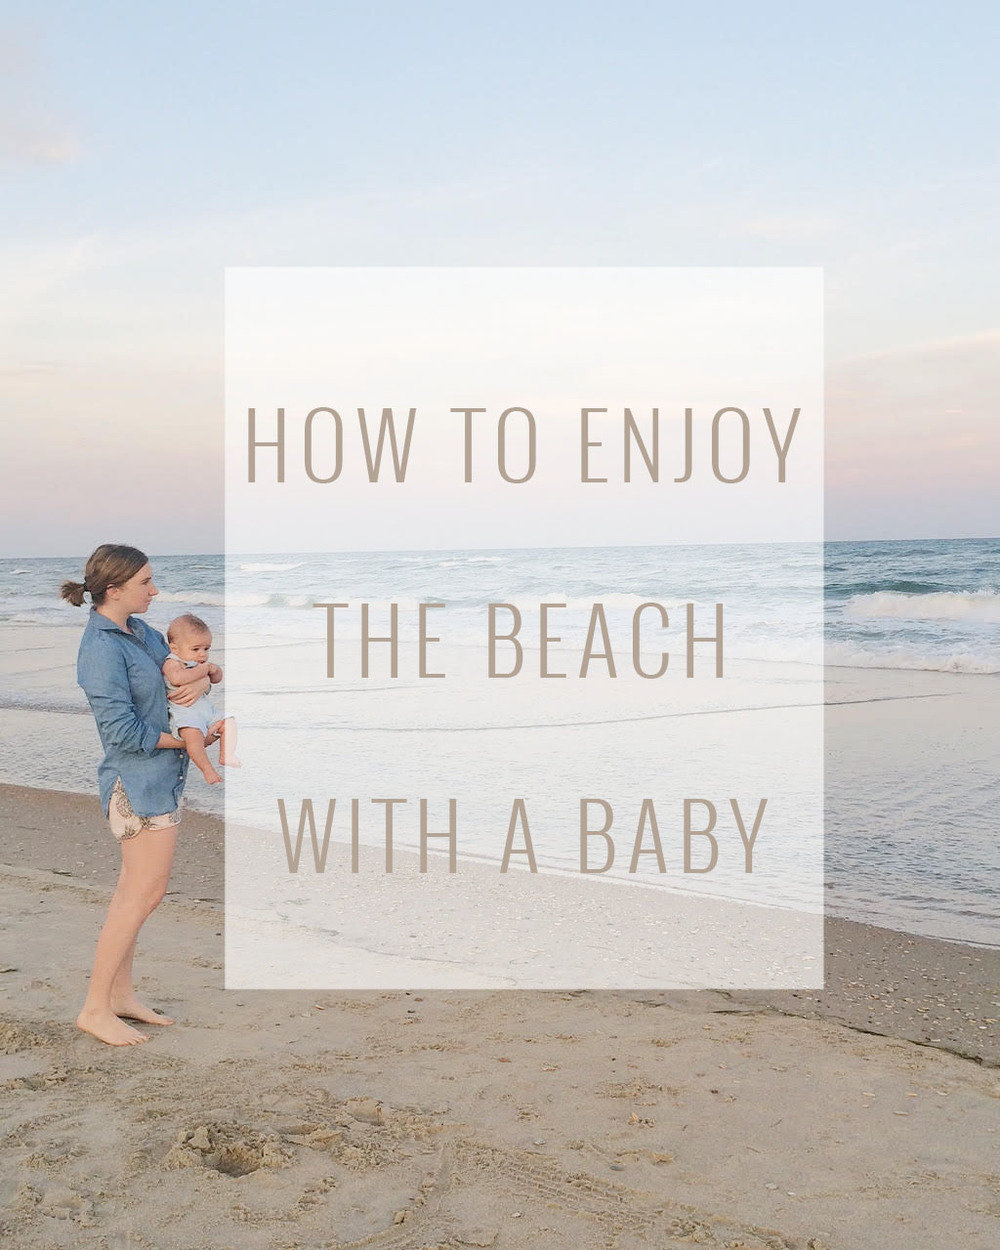 Beach Gear Essentials for Enjoying The Beach With A Baby | Momma Society-The Community of Modern Moms | www.MommaSociety.com | Join our Instagram Party @MommaSociety